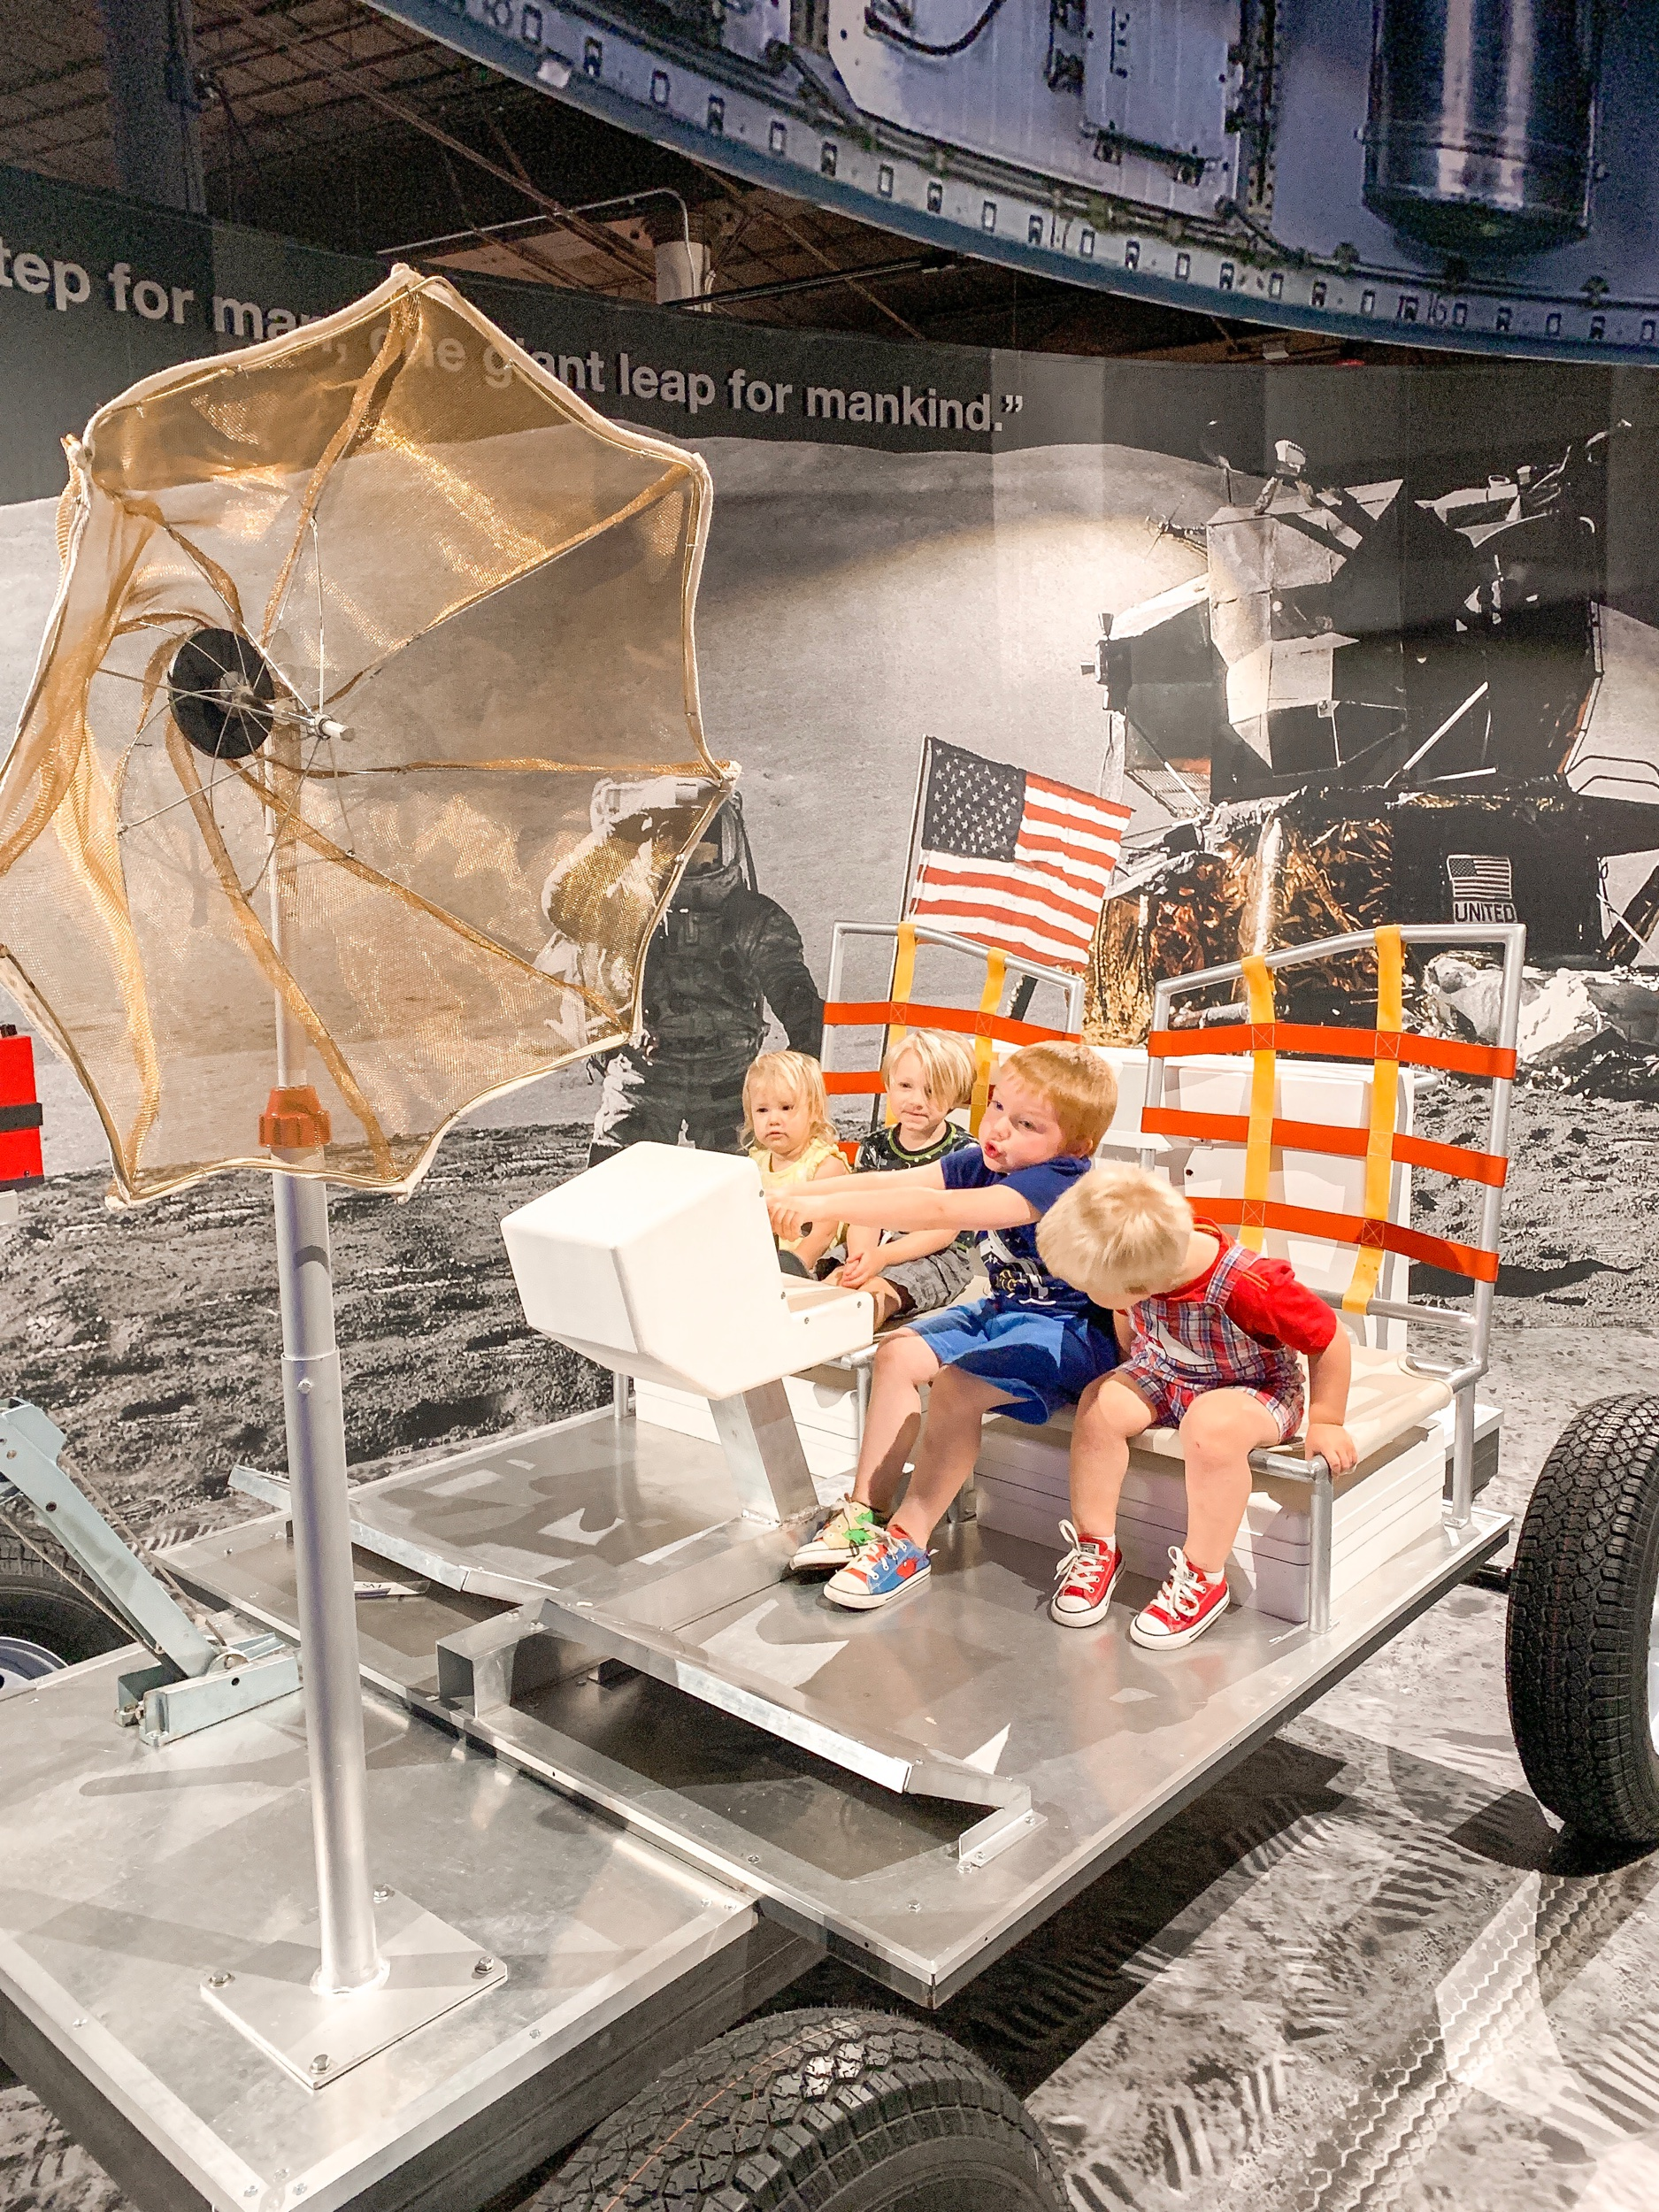 Meeting friends at the SC State Museum was a fun way to spend the summer and celebrate Space Week!